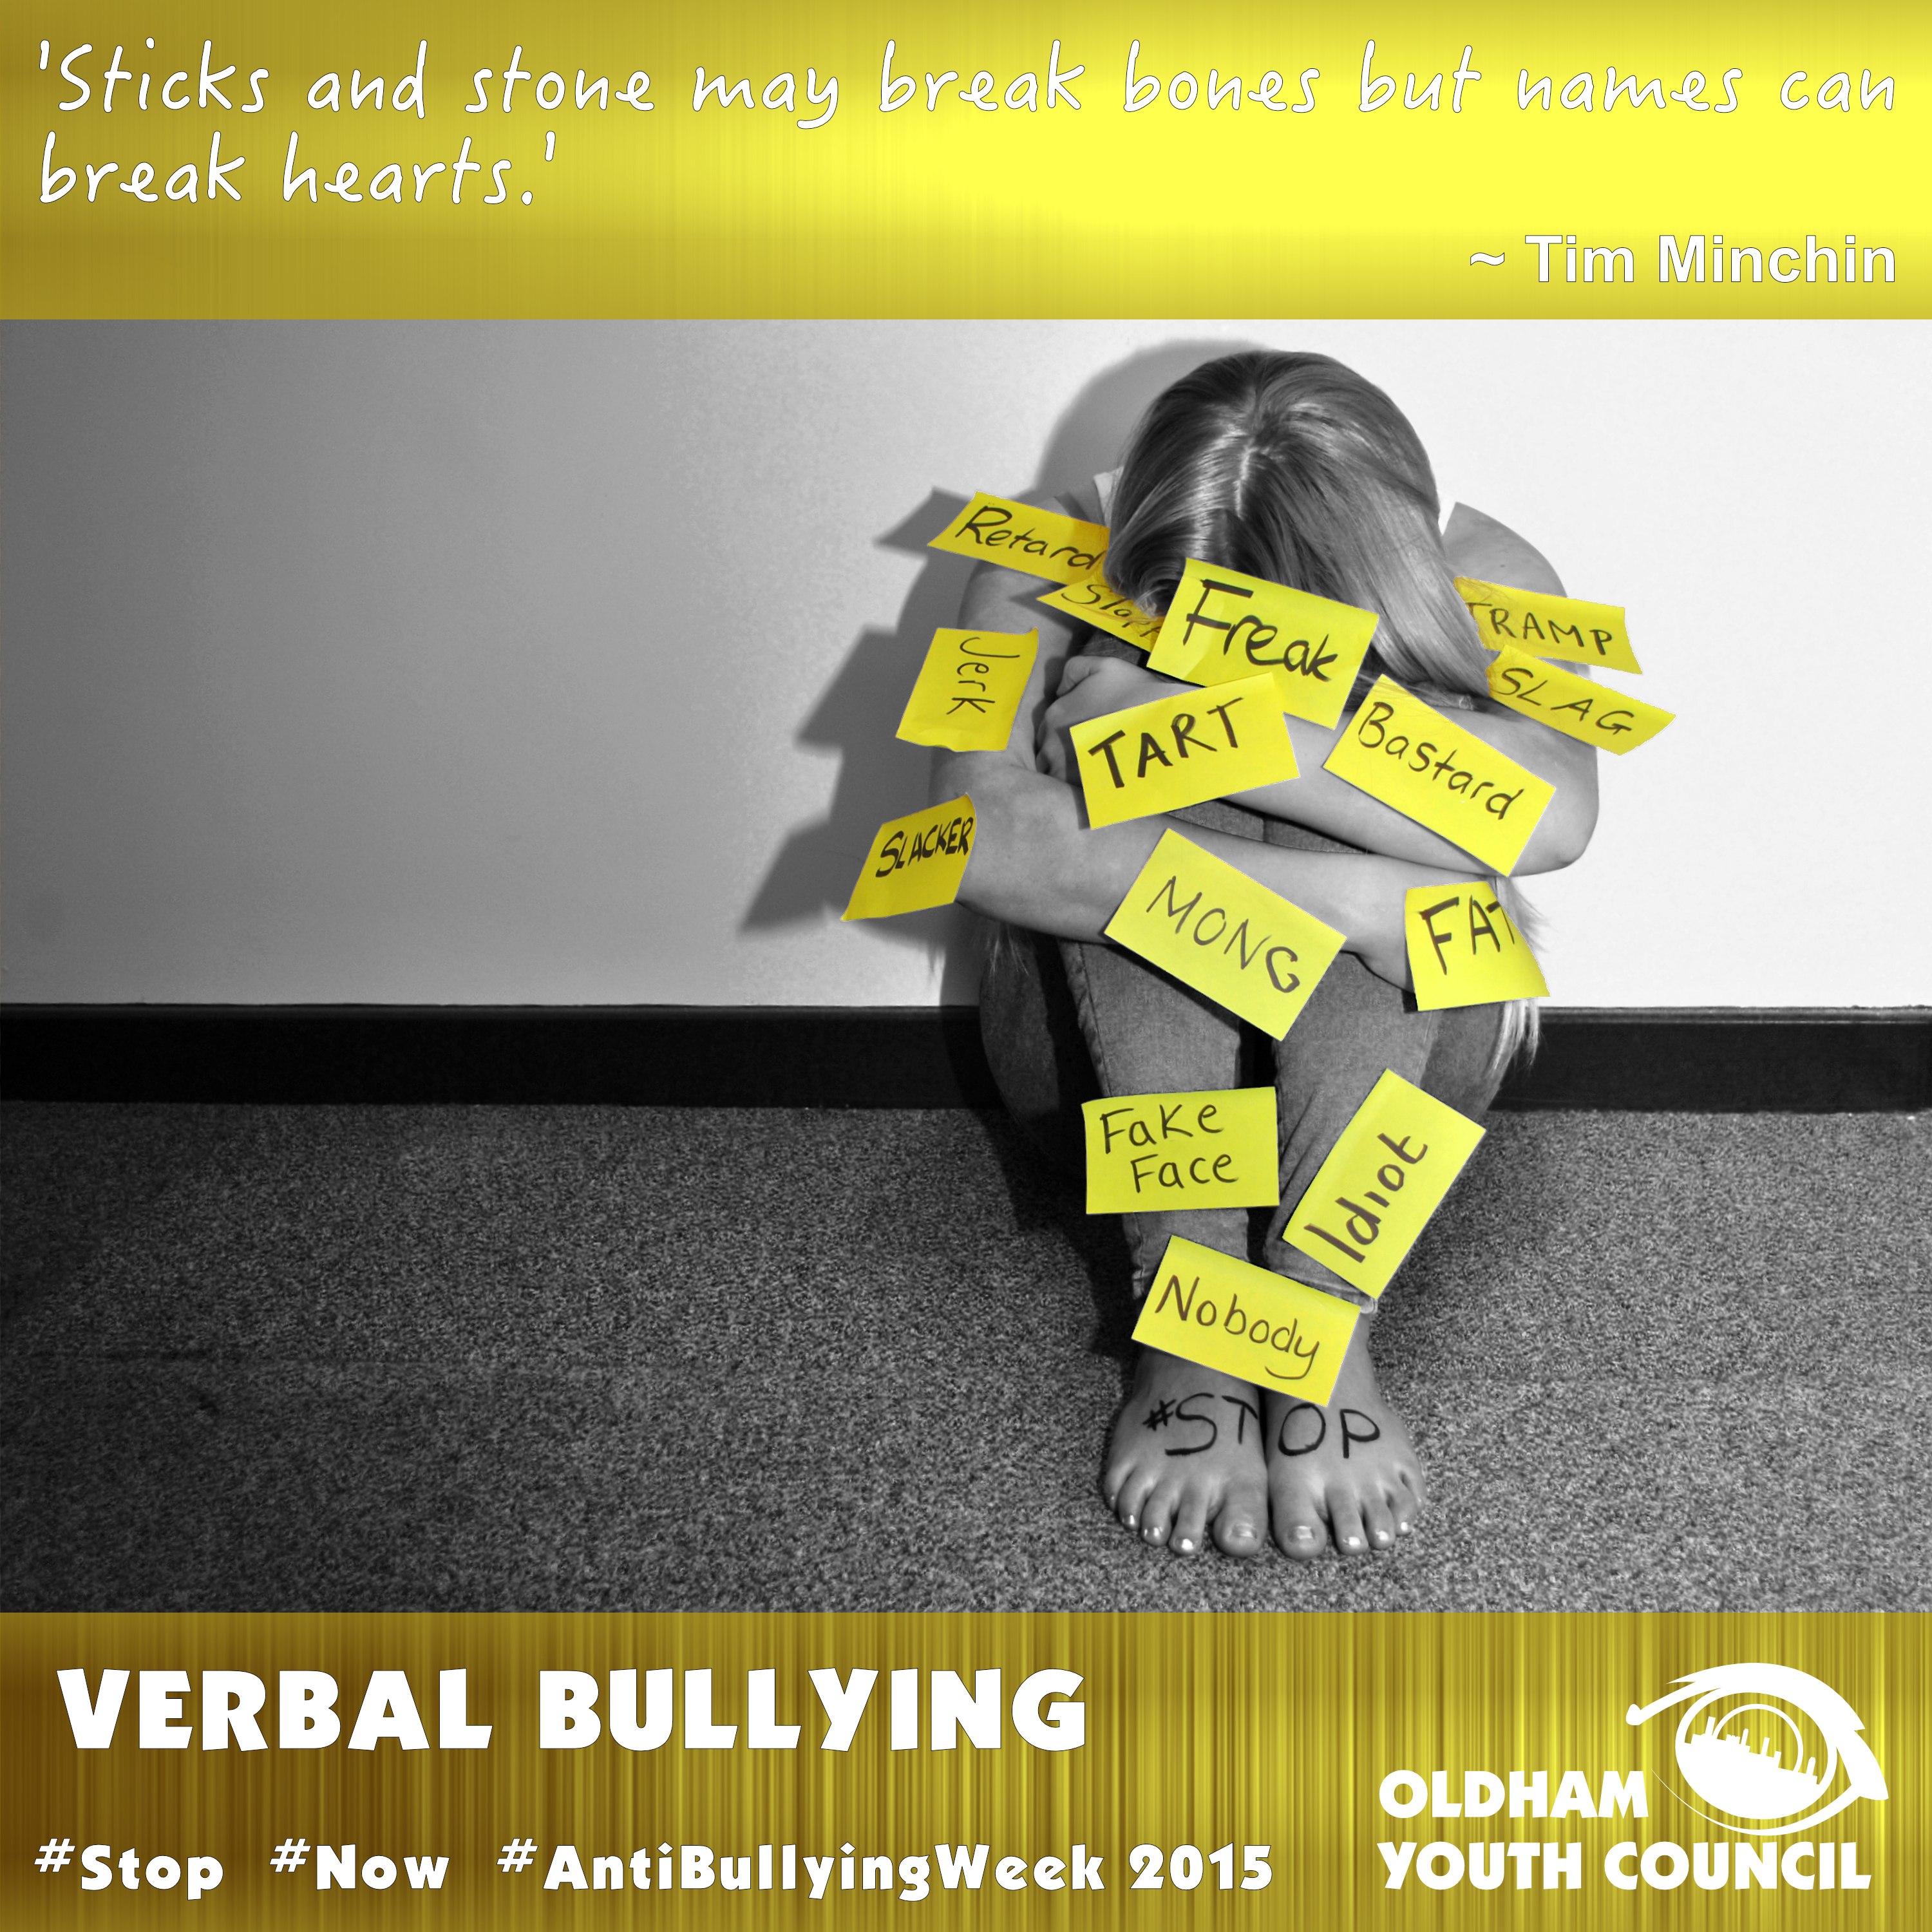 Anti-Bullying Week 2015 – Oldham Youth Council